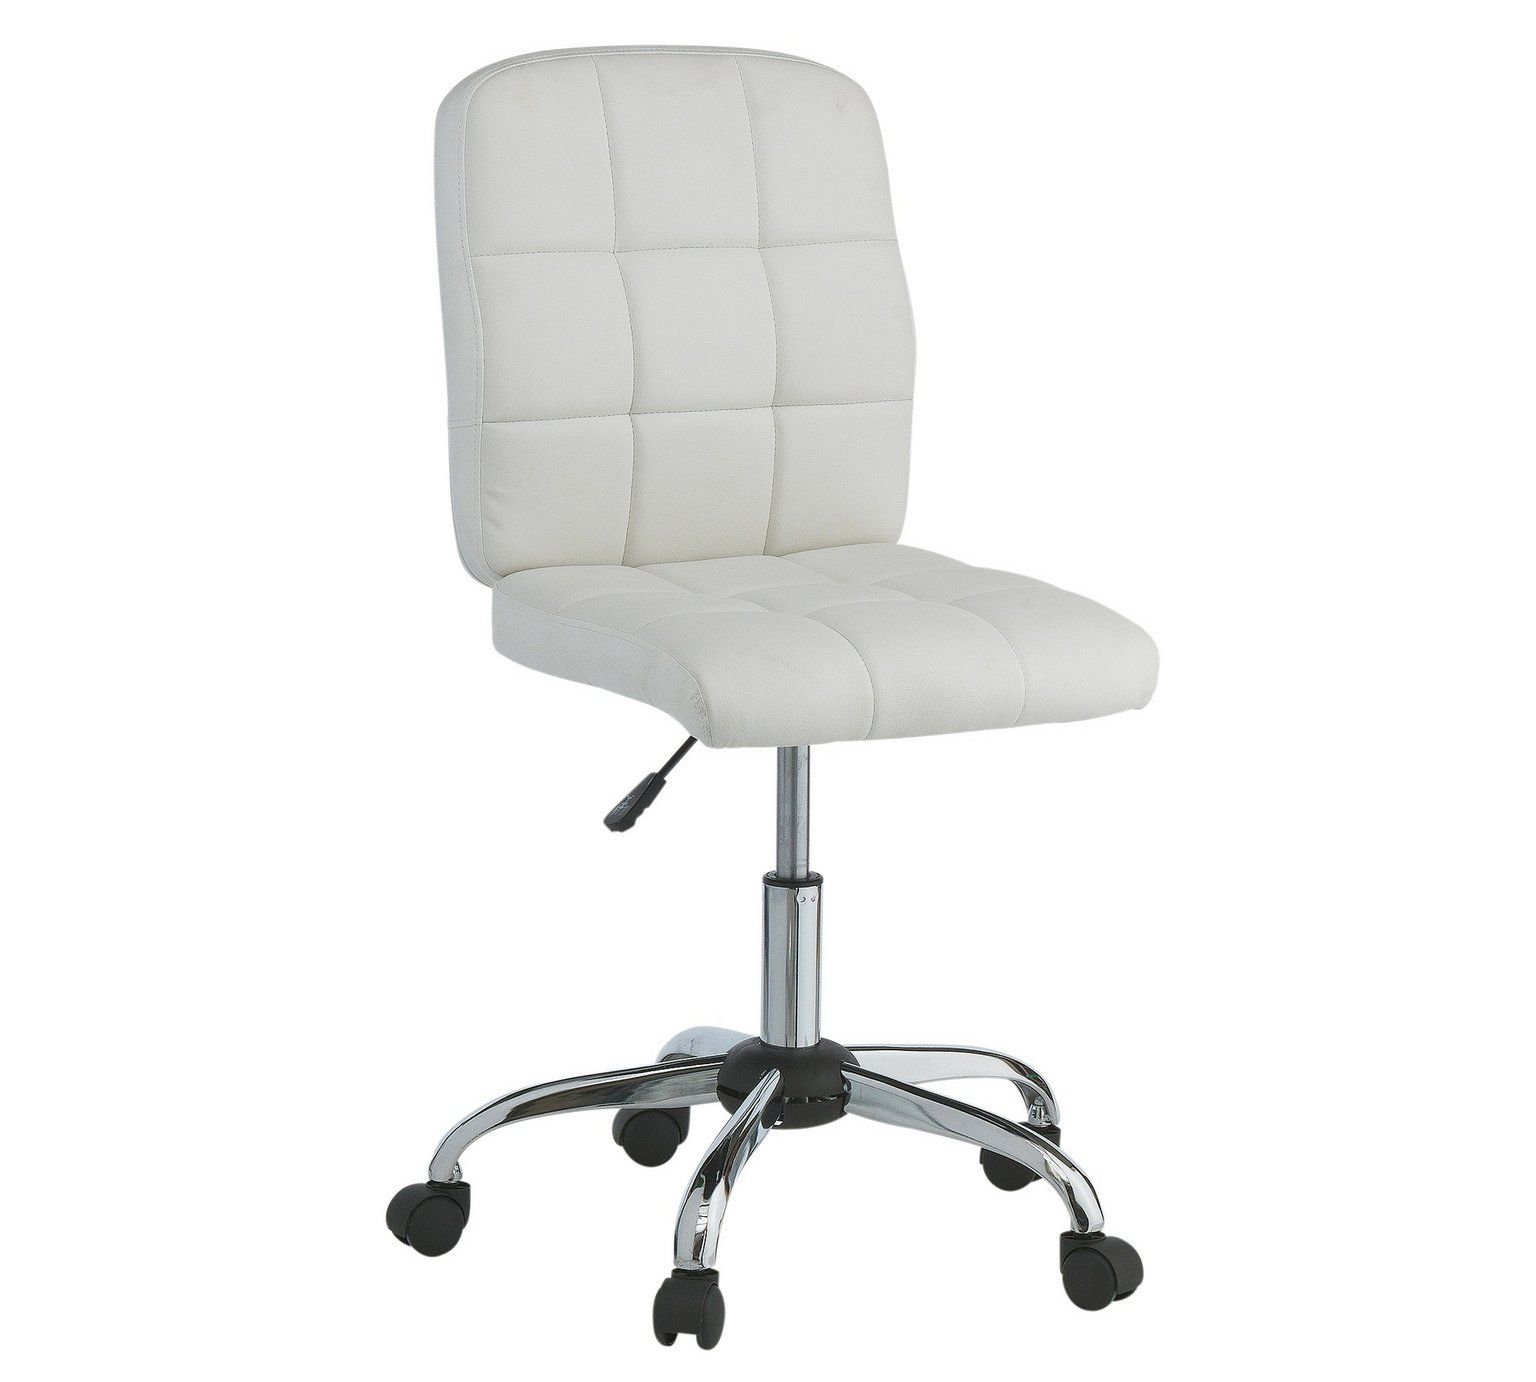 Buy HOME Jarvis Gas Lift Height Adjustable Office Chair - White at ...